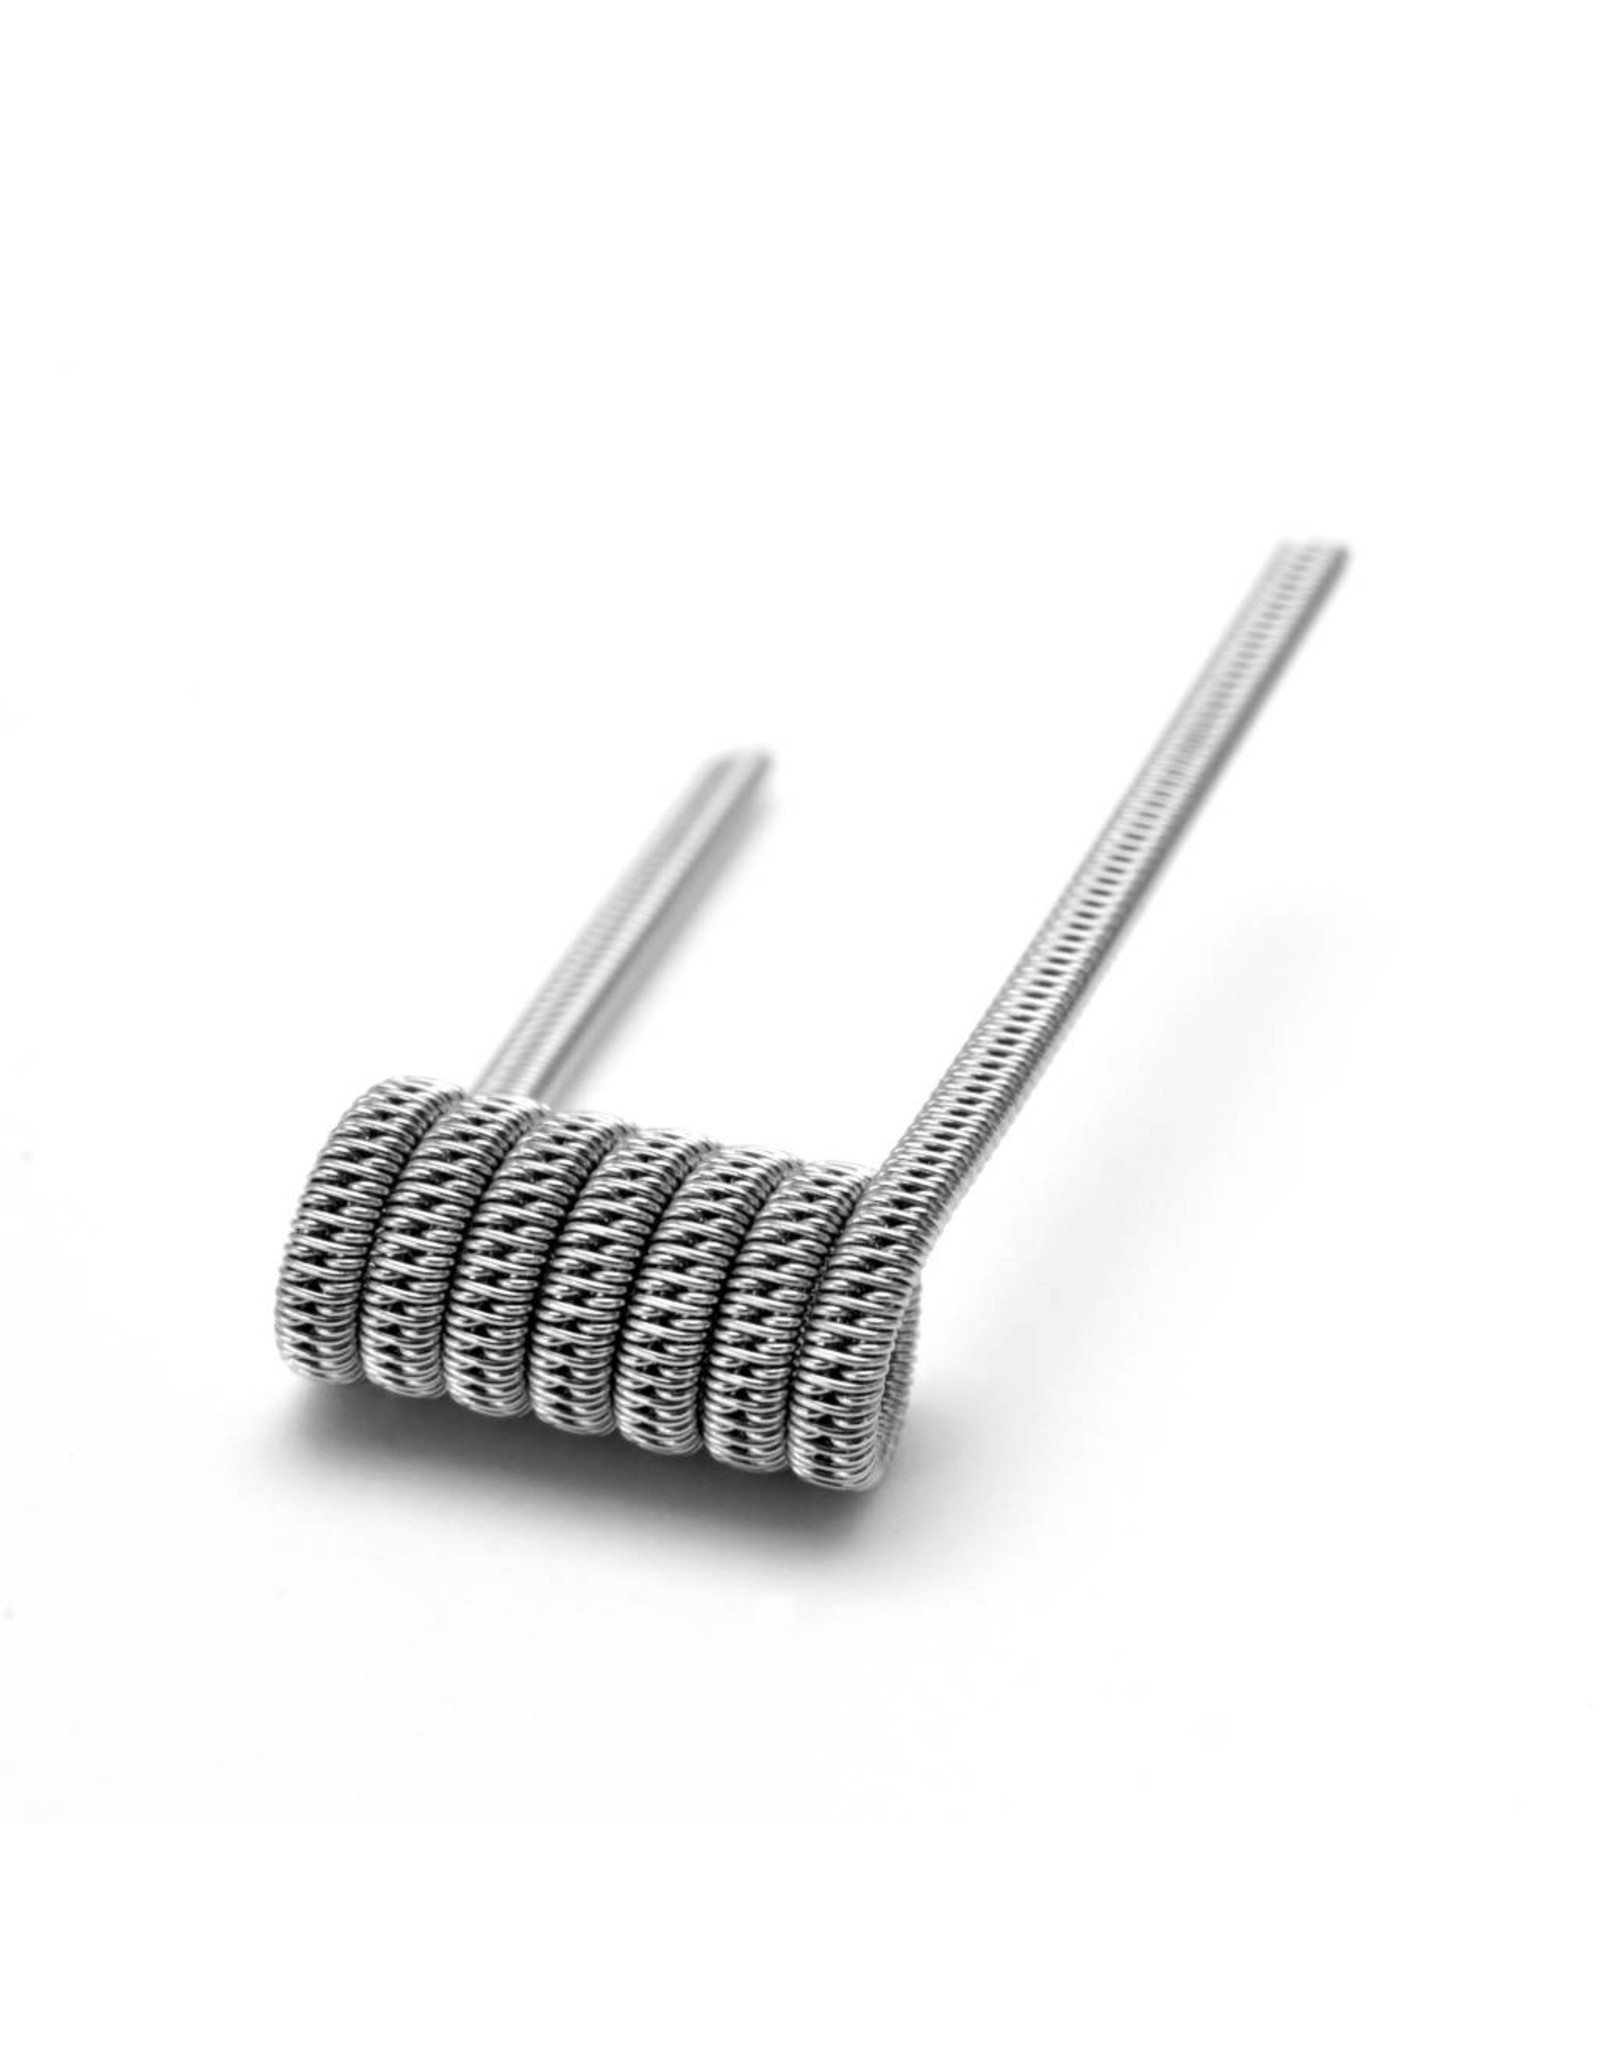 Definitive Coils Definitive Staggered Fused RTA Claptons - V4